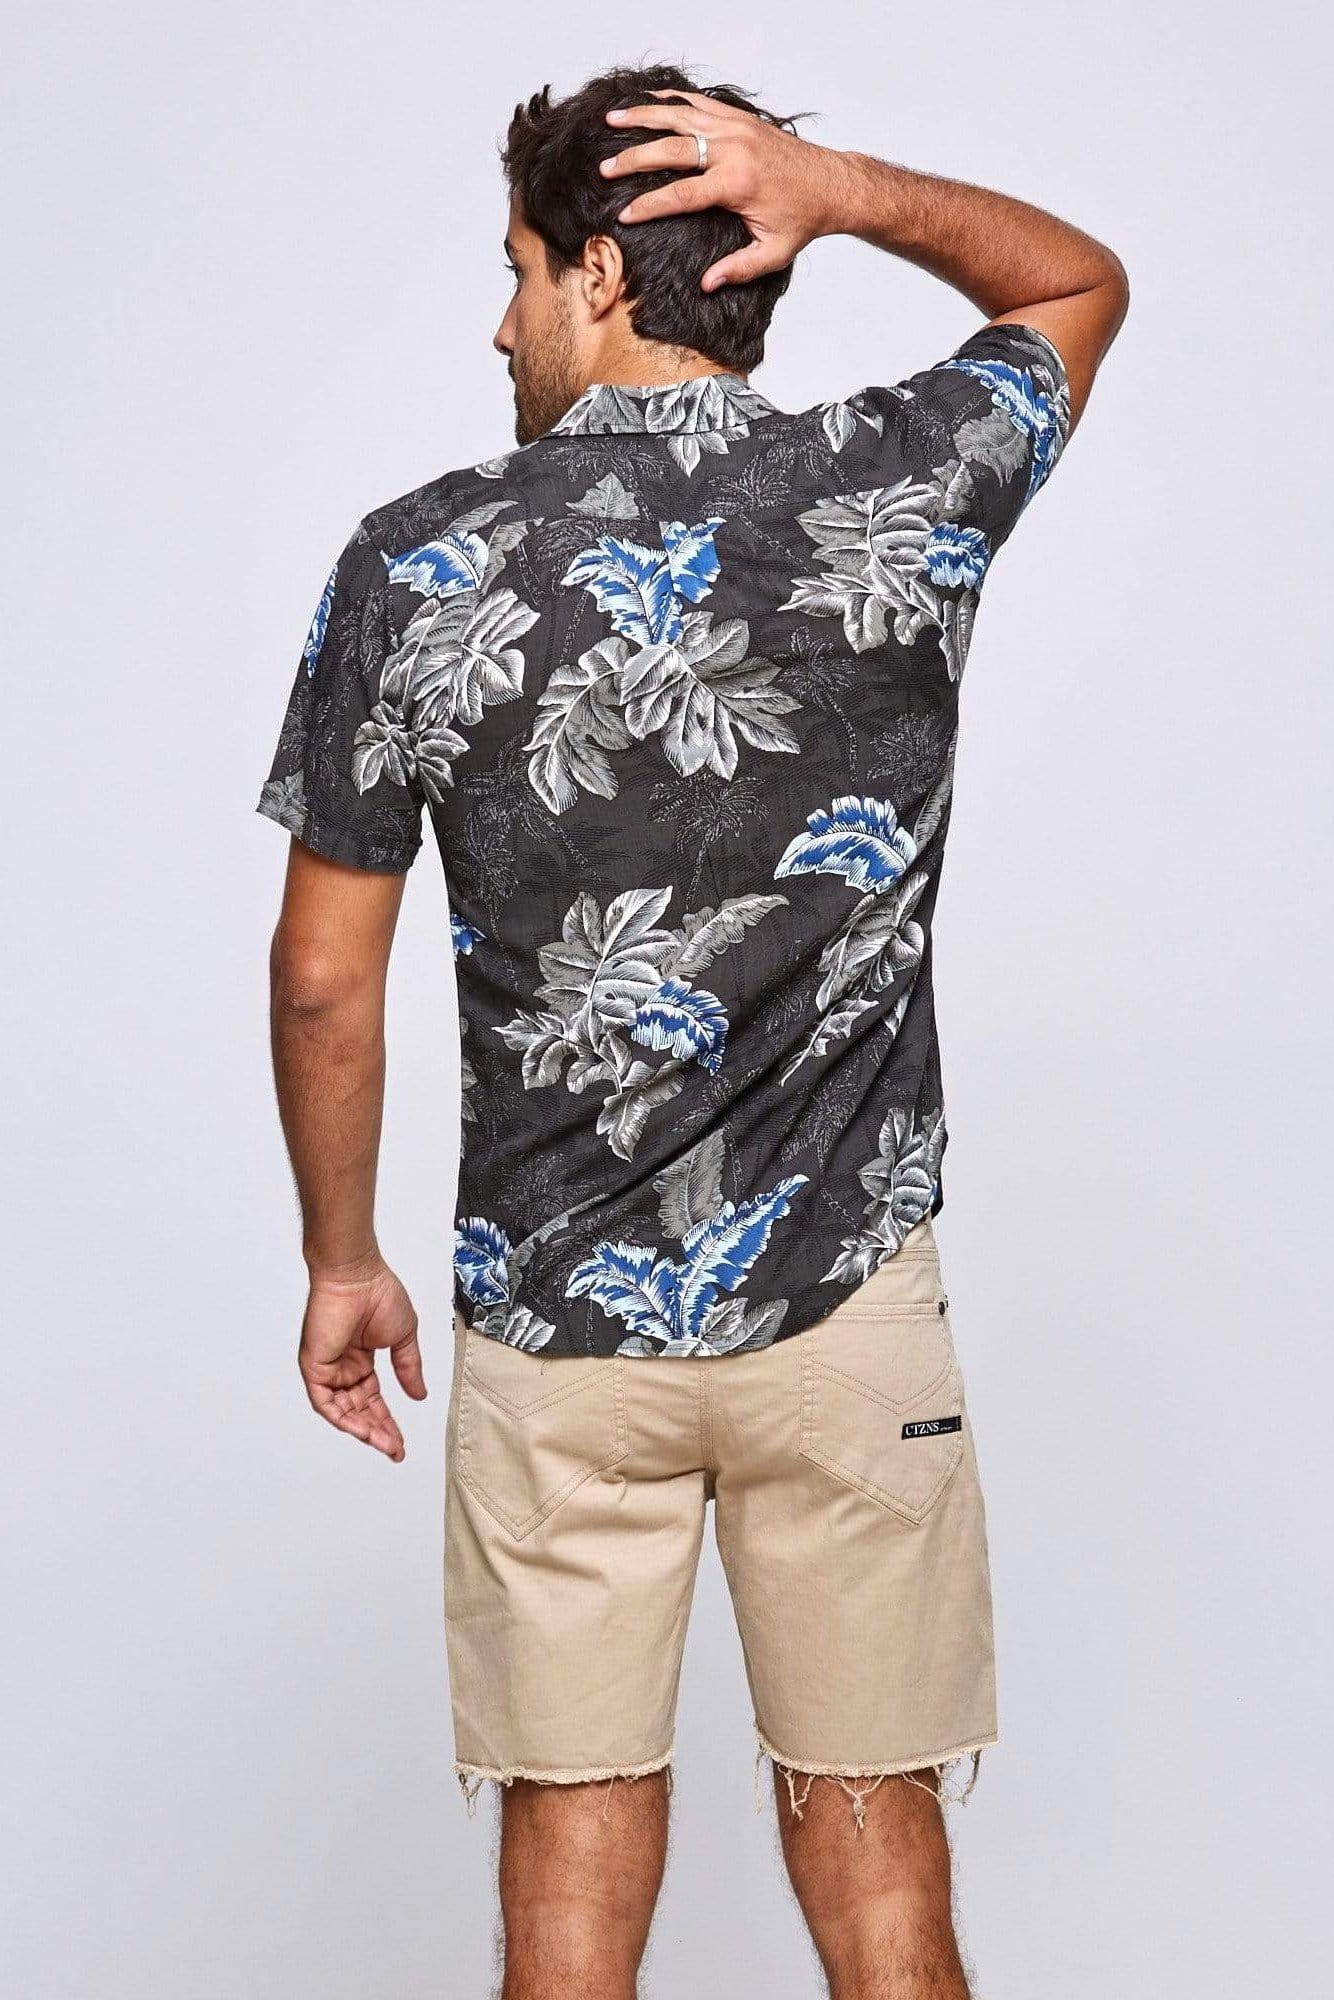 Black Tropical Shirt - Man Shirt - LOST IN PARADISE